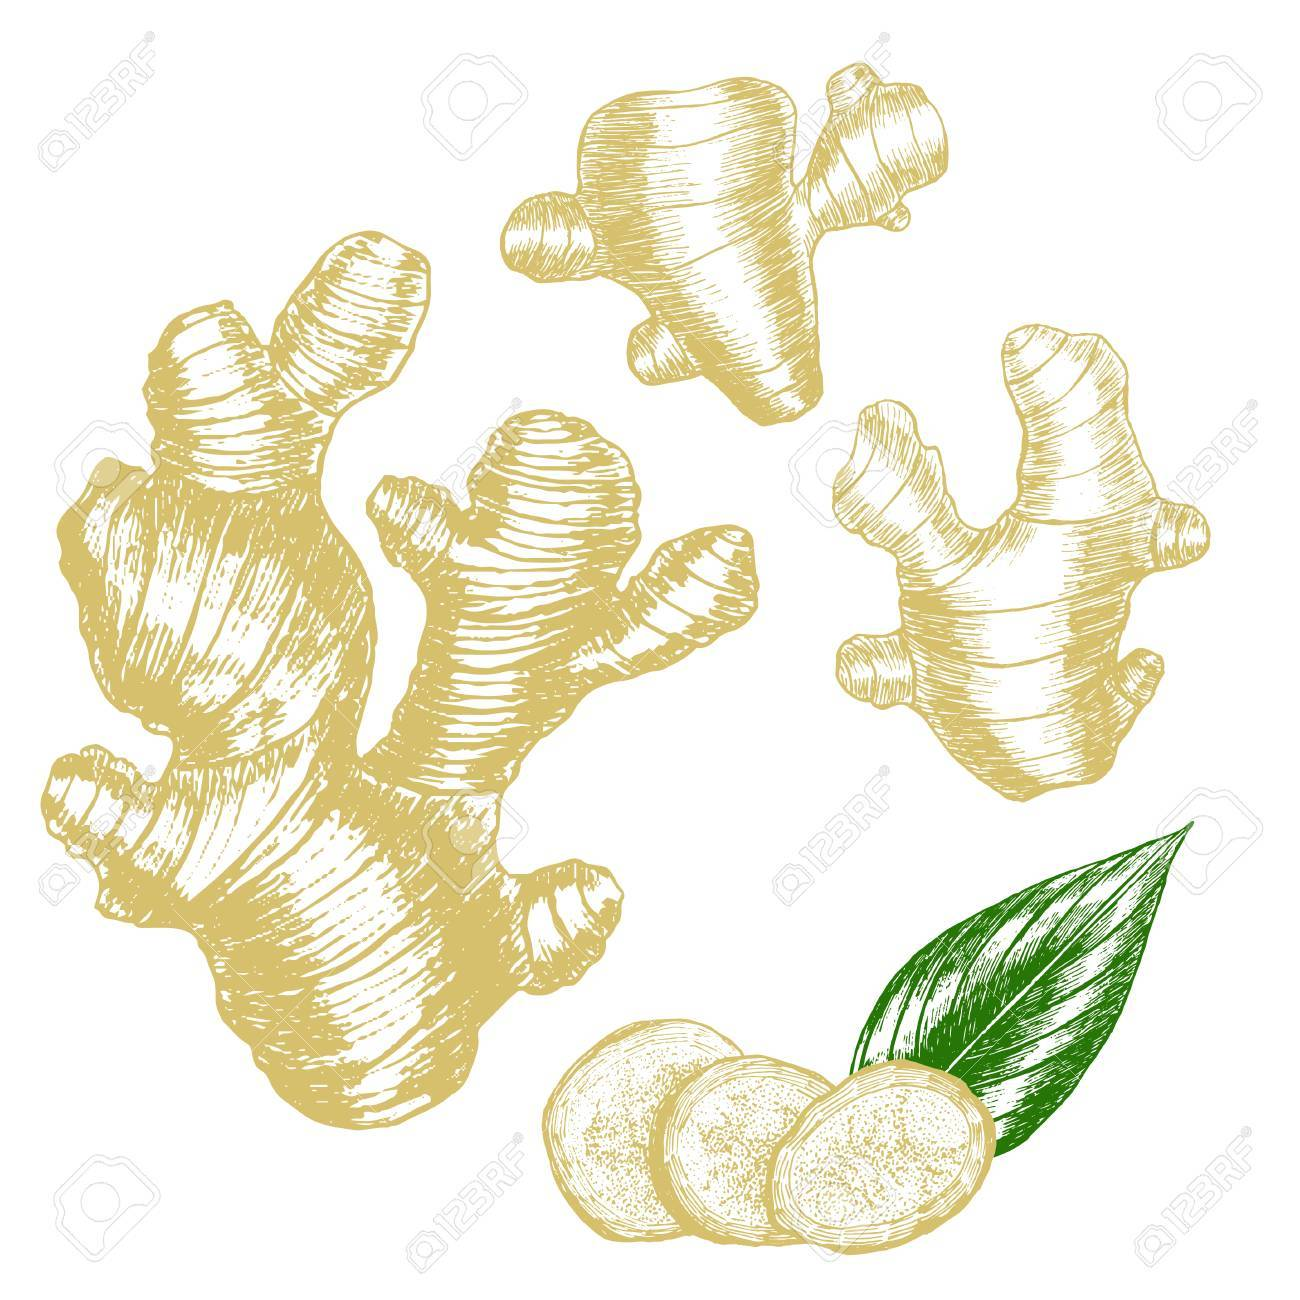 1300x1300 Ginger Hand Draw Sketch. Slices, Root And Leaves. Herbal Spice